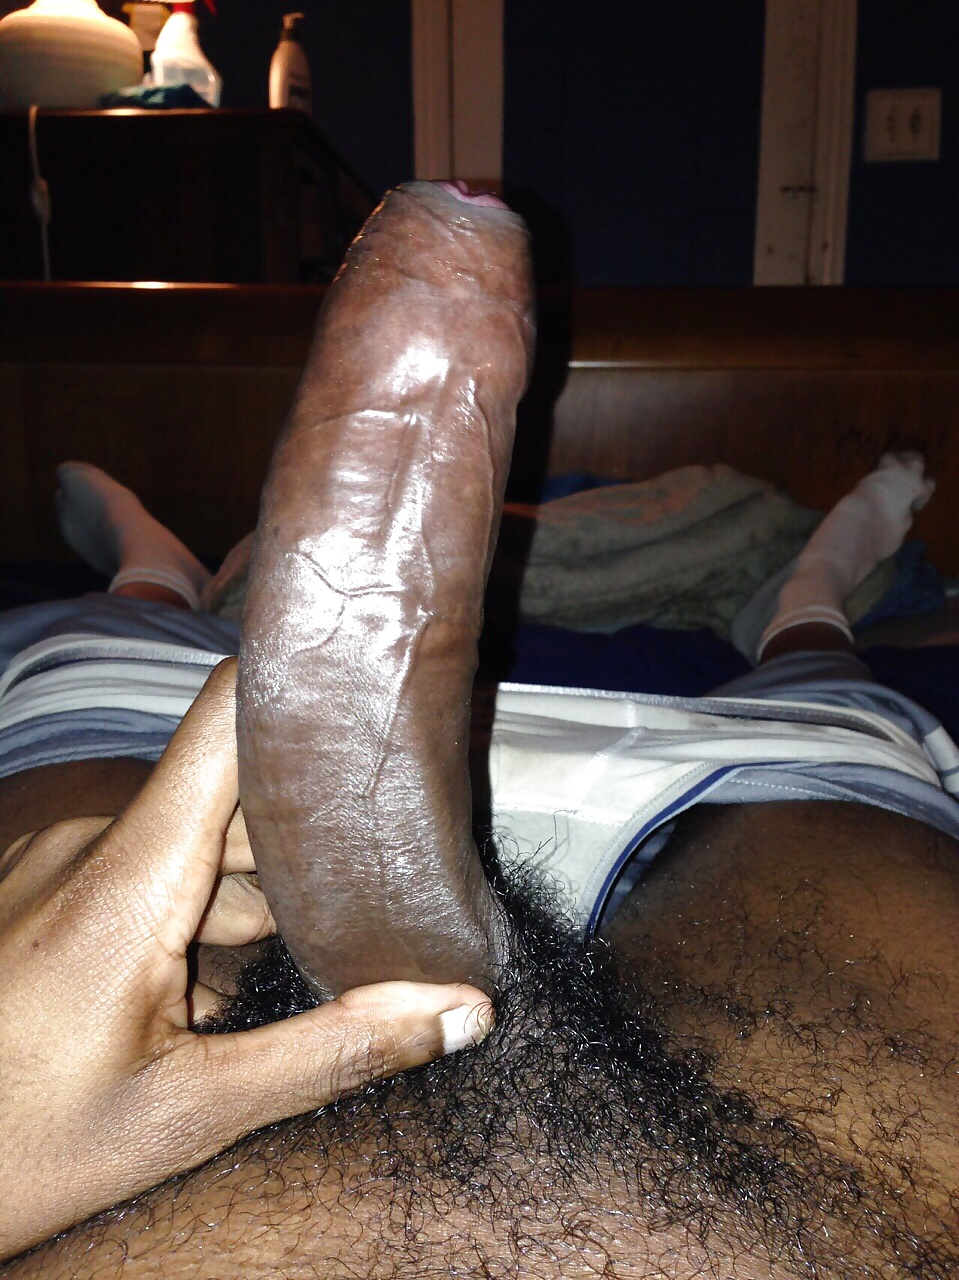 Black dick blog